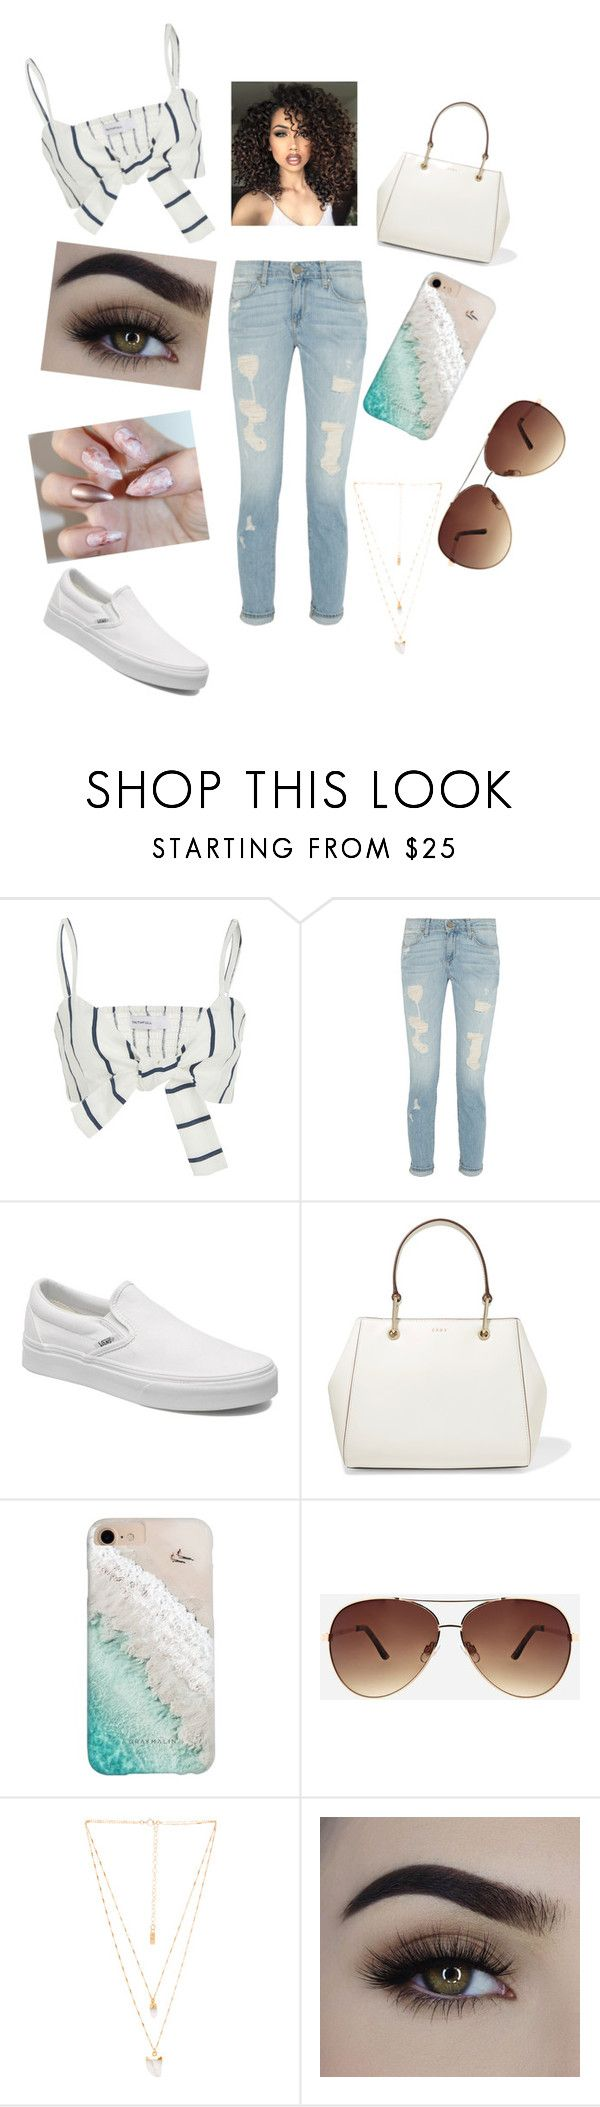 """""""Feeling Like Me 💕"""" by mixed-radiance ❤ liked on Polyvore featuring Faithfull, Vans, DKNY, Gray Malin, Ashley Stewart, Natalie B and ASAP"""